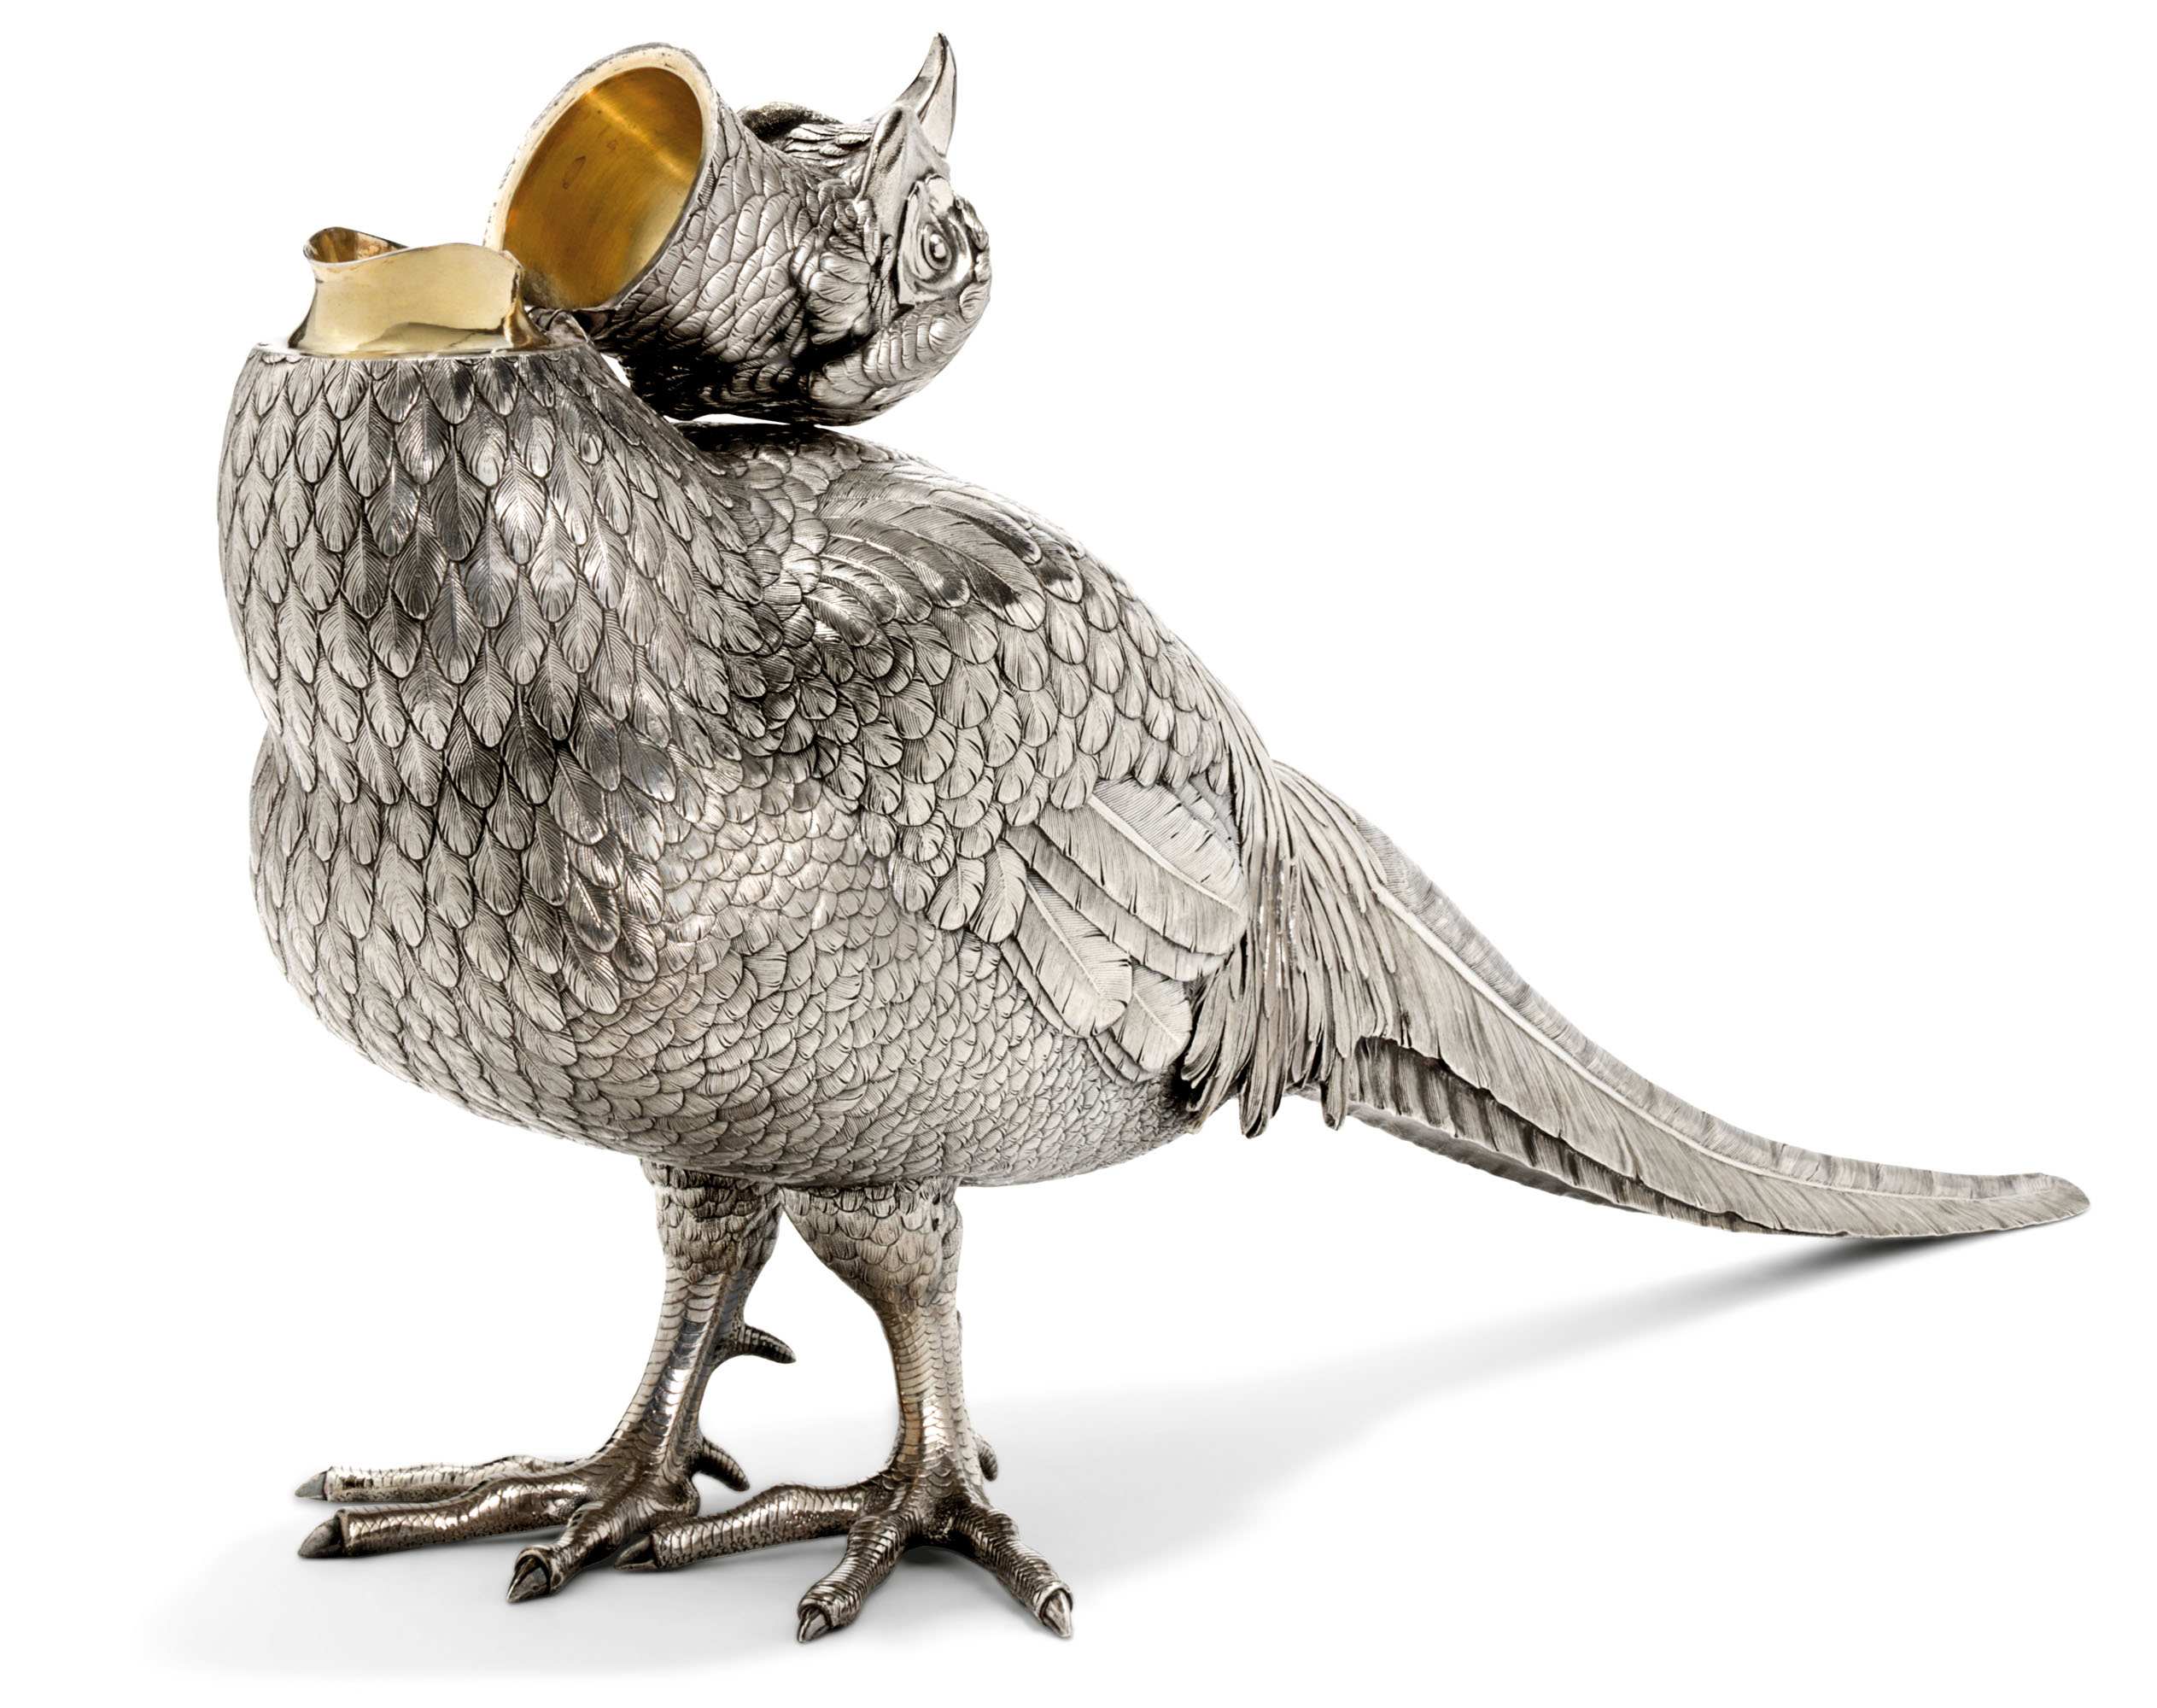 A LARGE AND RARE SILVER WINE EWER IN THE FORM OF A PHEASANT